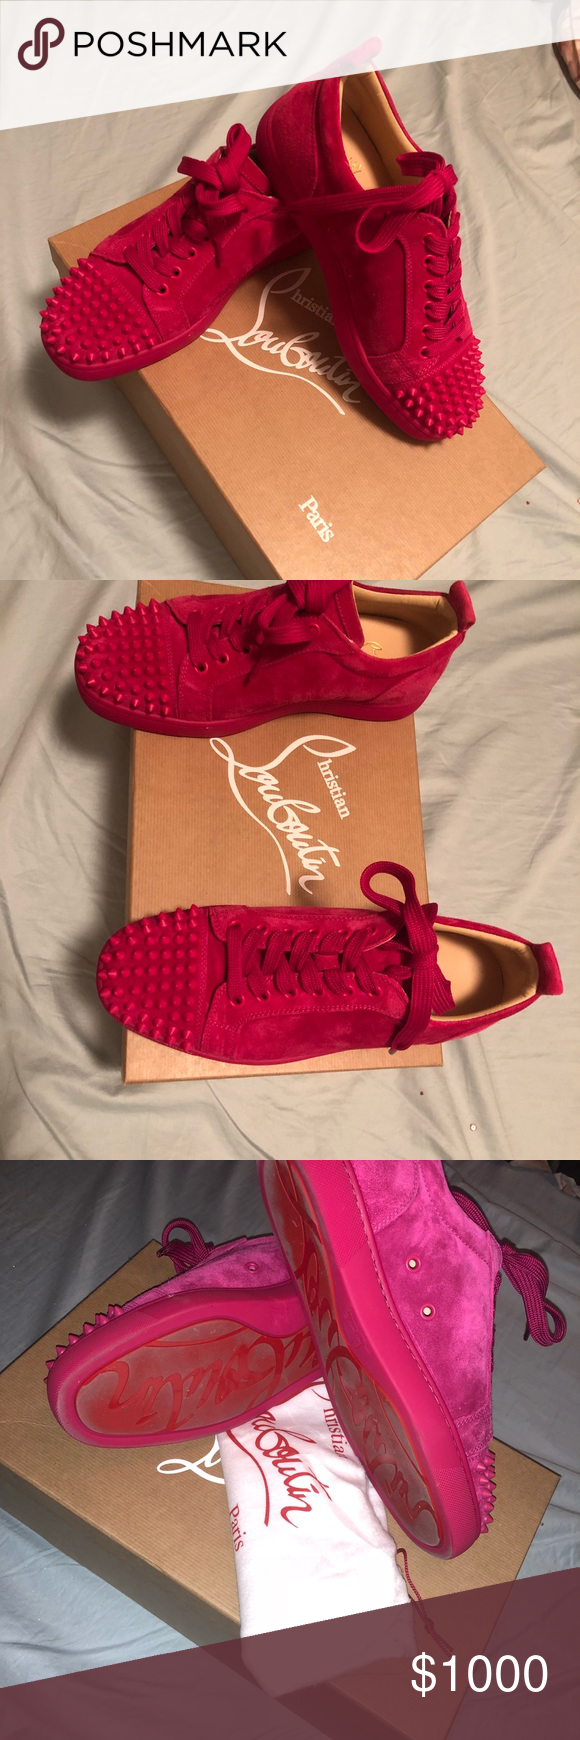 3174ab02790 Pink Christian Louboutin spike sneakers Identifiably Christian ...